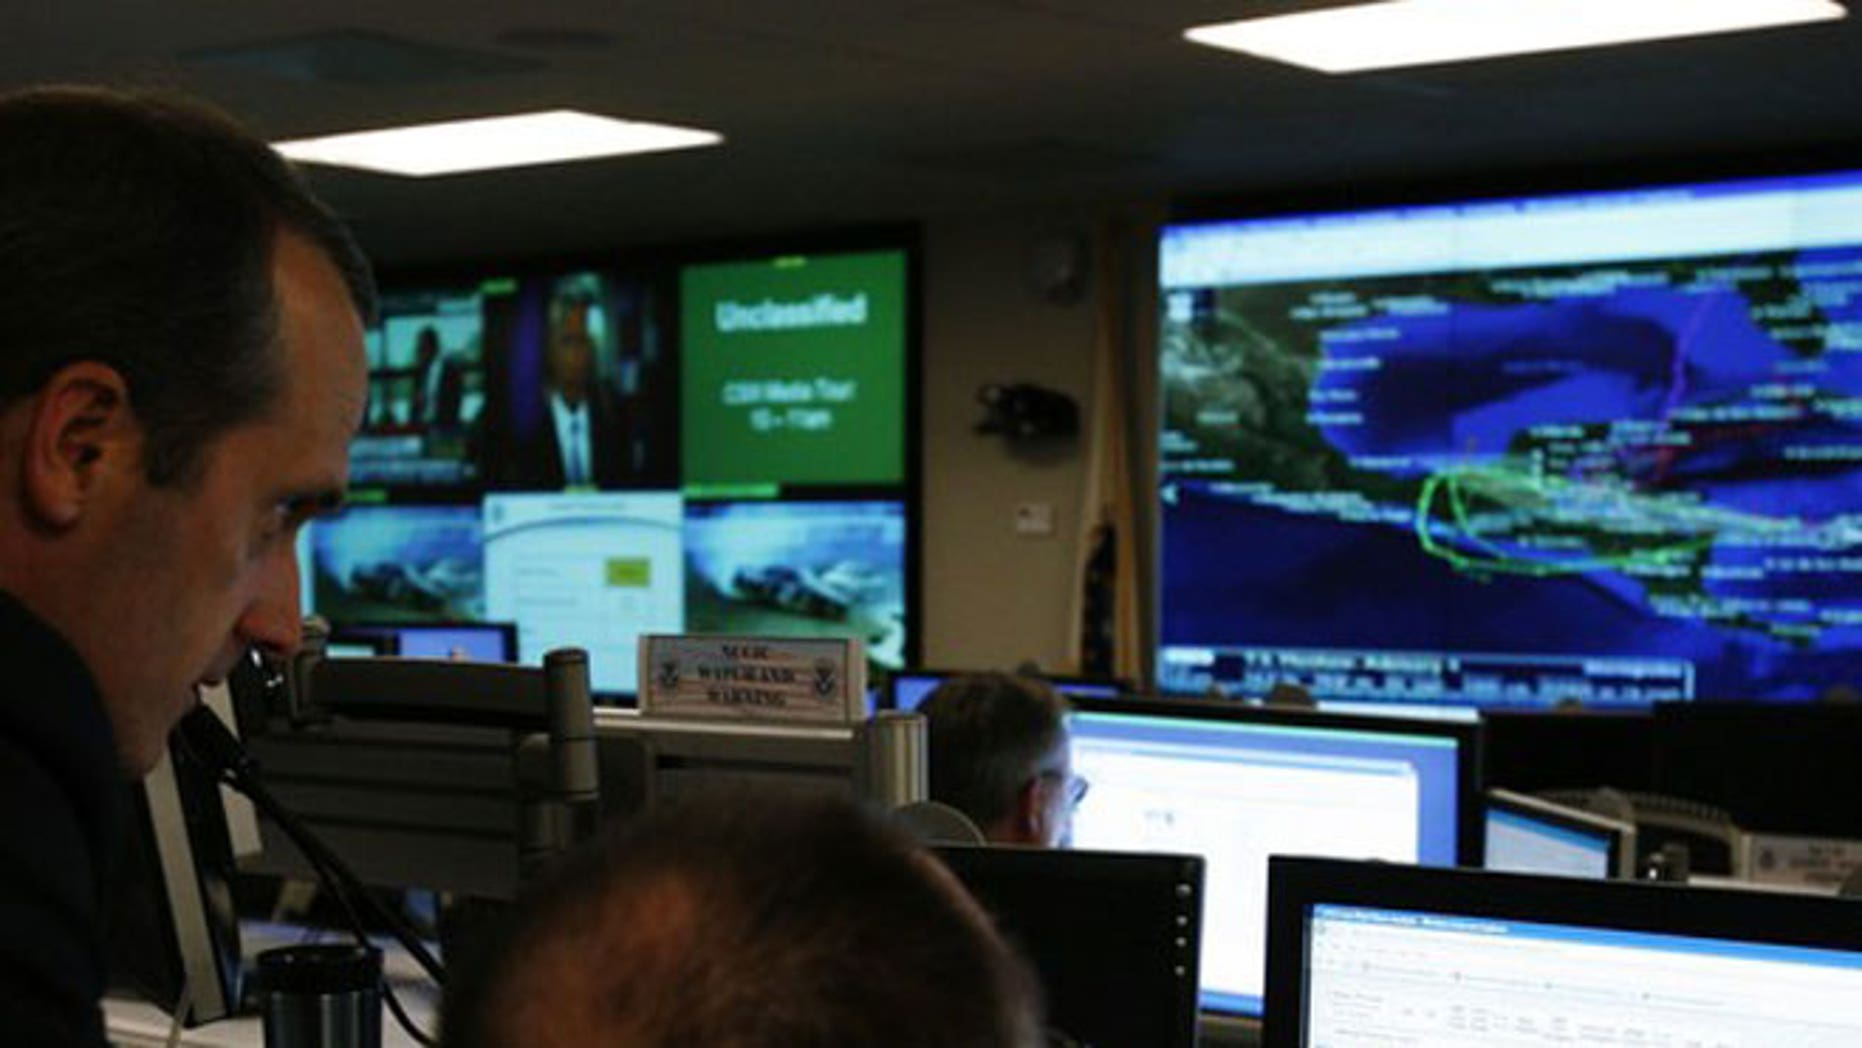 In this September 24, 2010 file photo, U.S. Department of Homeland Security analysts work at the National Cybersecurity & Communications Integration Center (NCCIC) located just outside Washington in Arlington, Virginia.